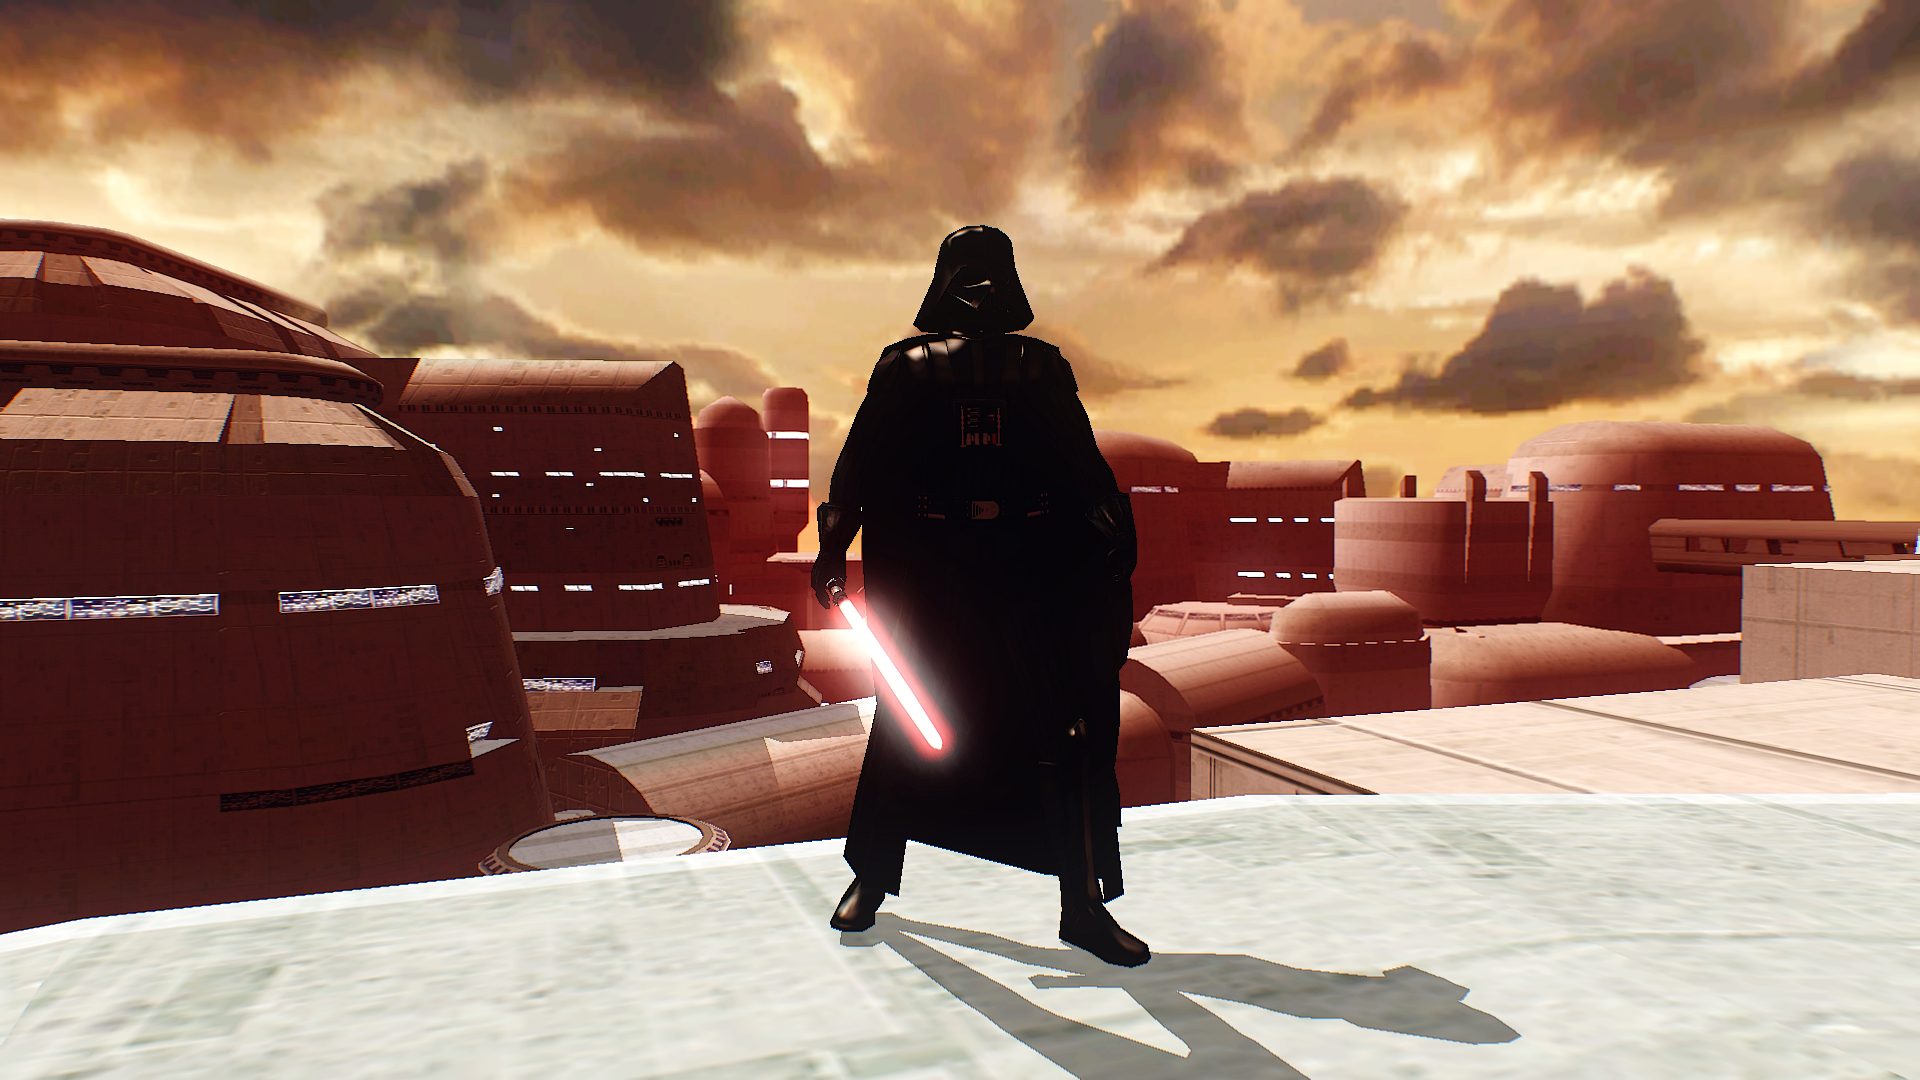 Darth Vader 2017 Hd Graphics Mod Harrisonfog